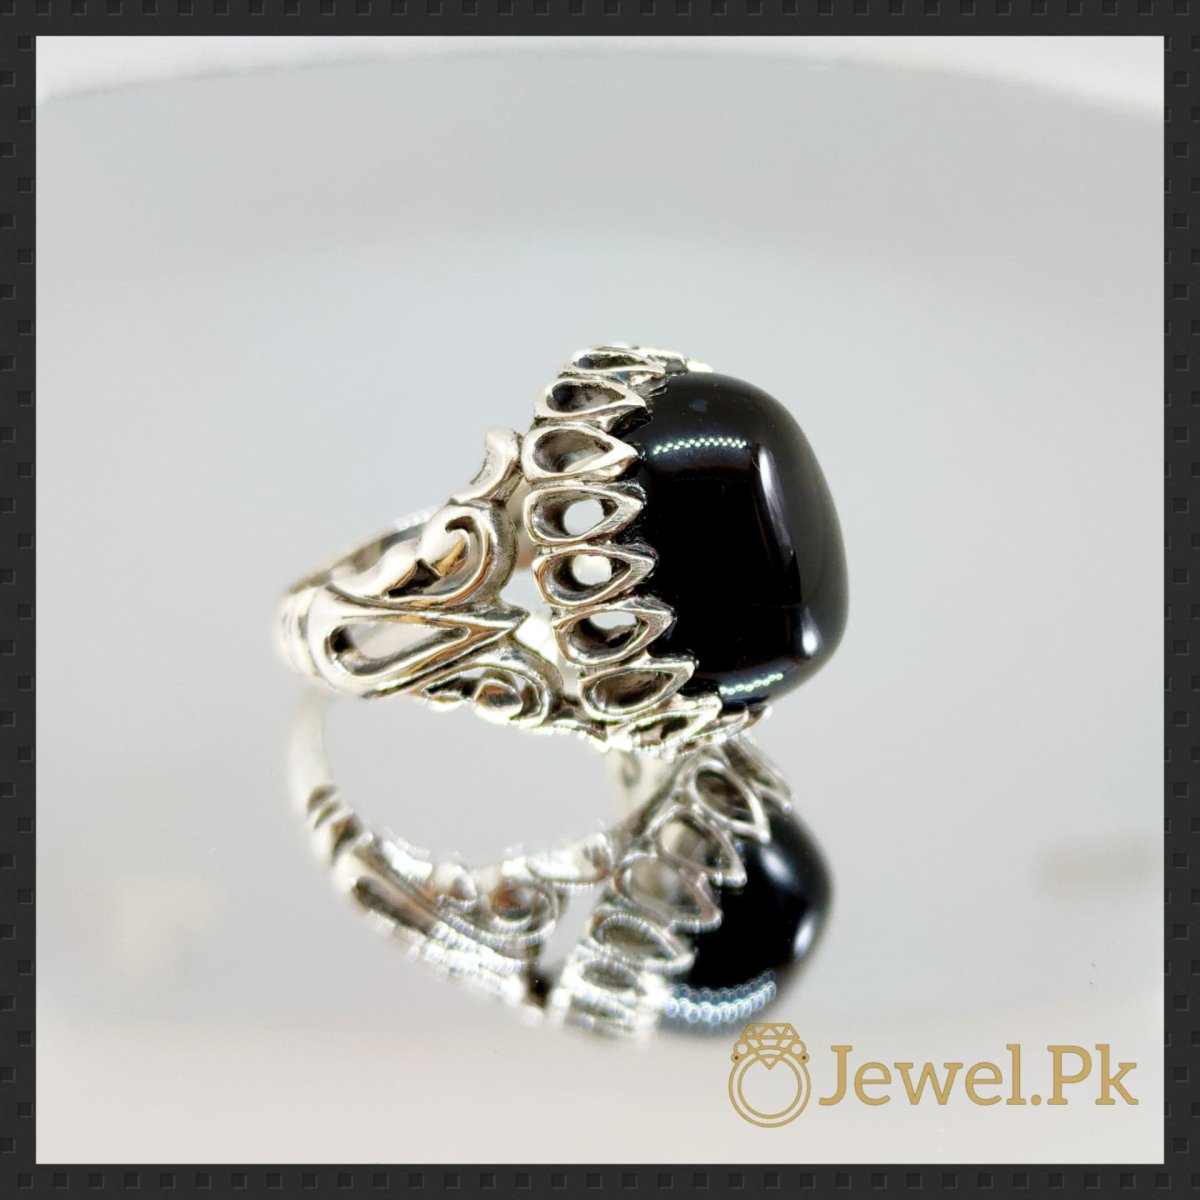 Silver 925 Chandi Ring in Agate - Aqeeq Ring